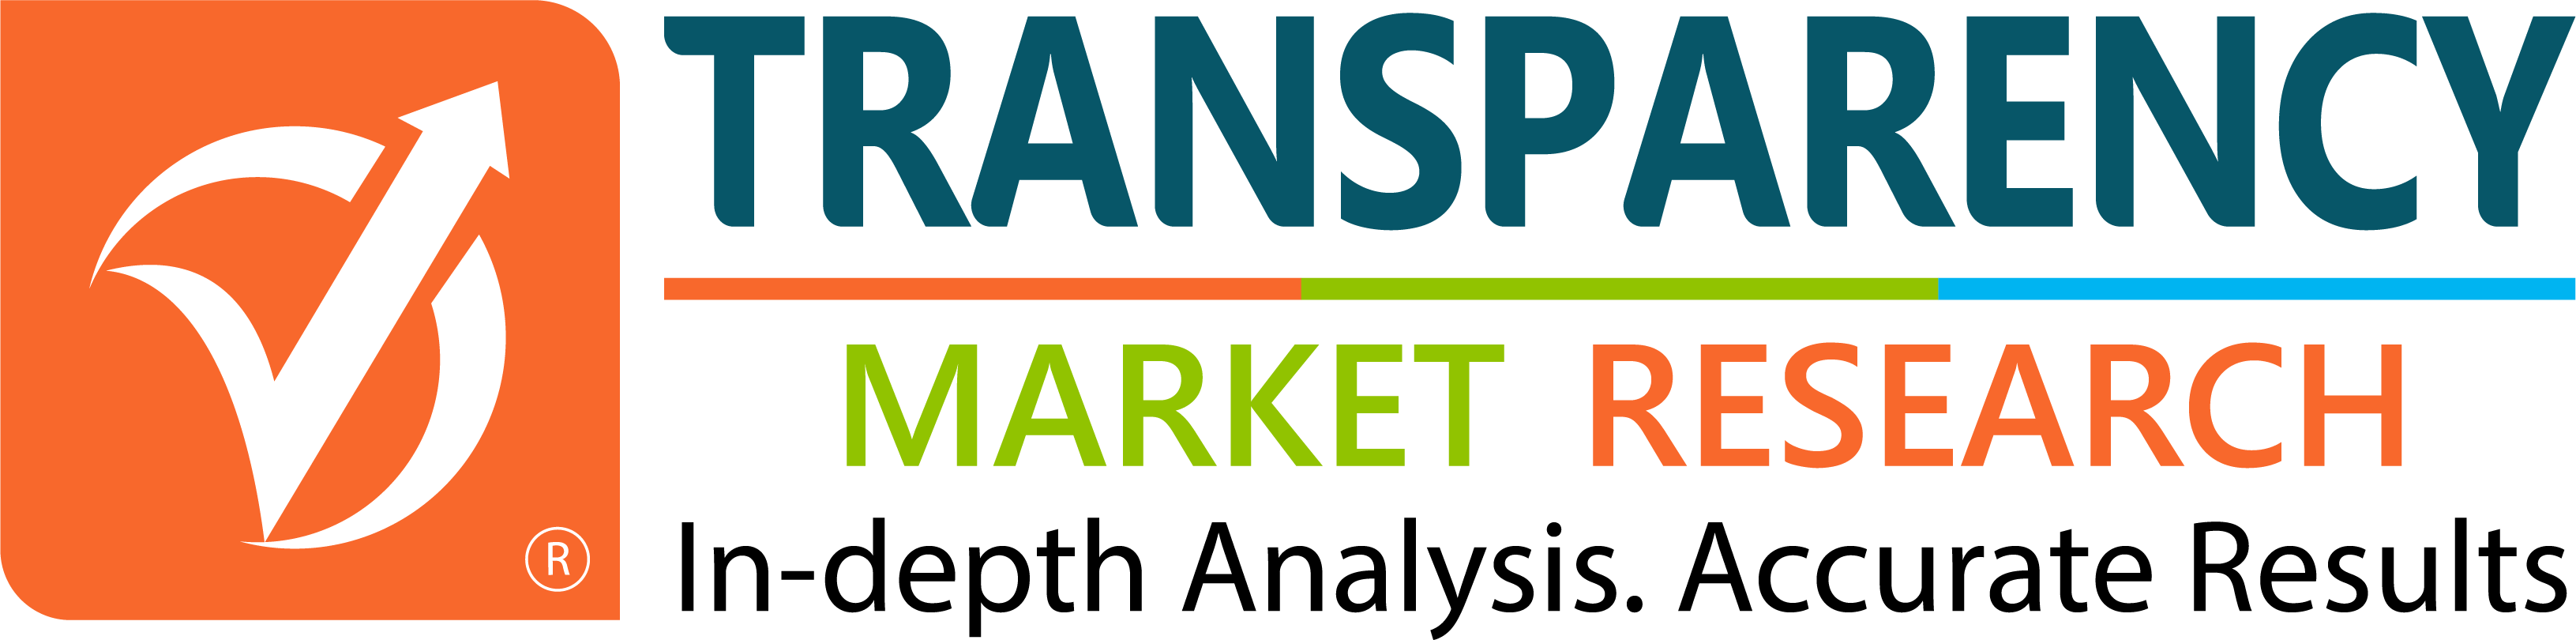 Population Health Management Market Outlook On Rising Application, Revolutionary Trends & Potential Growth Ways 2025